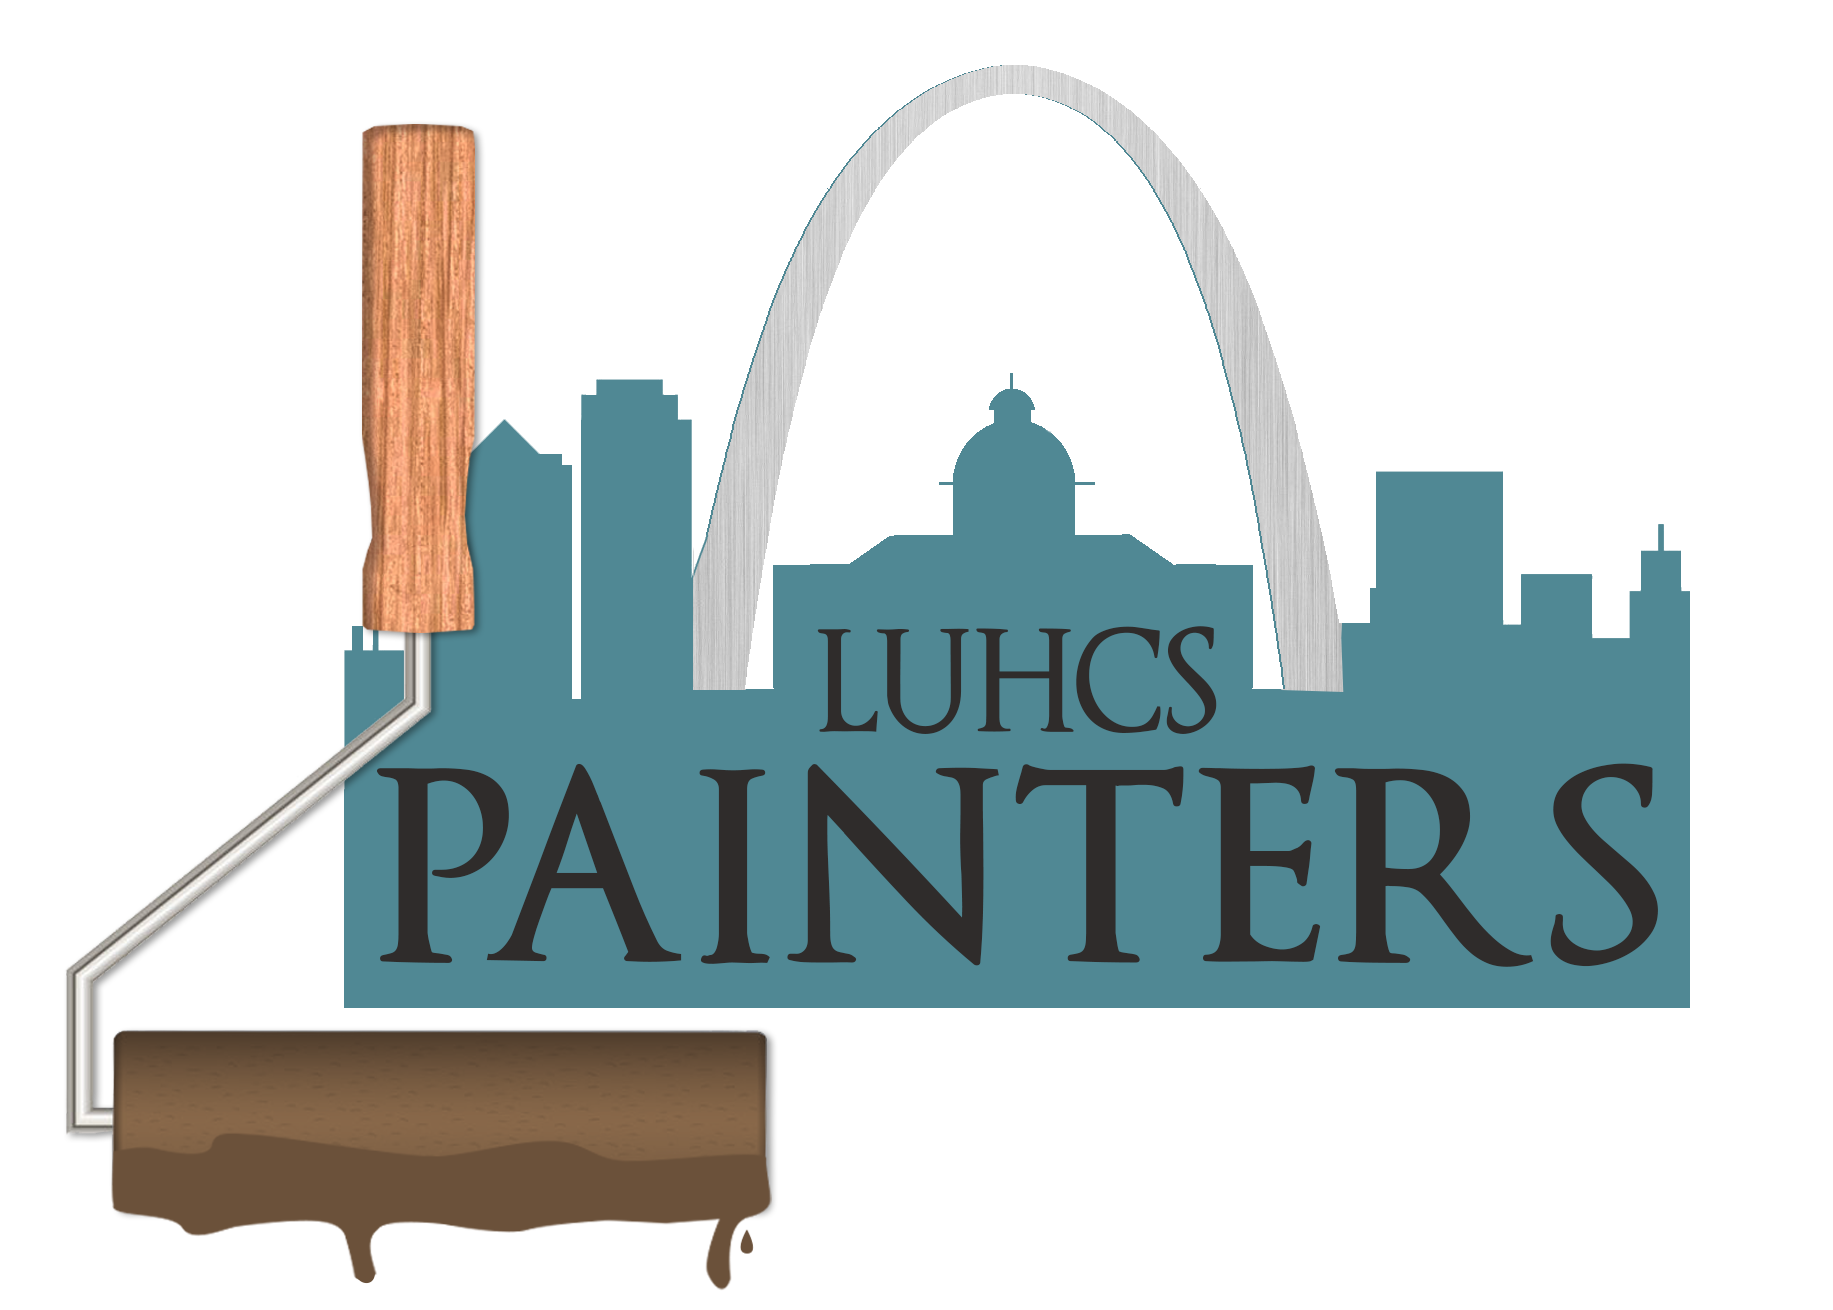 Luhcs Painters st louis